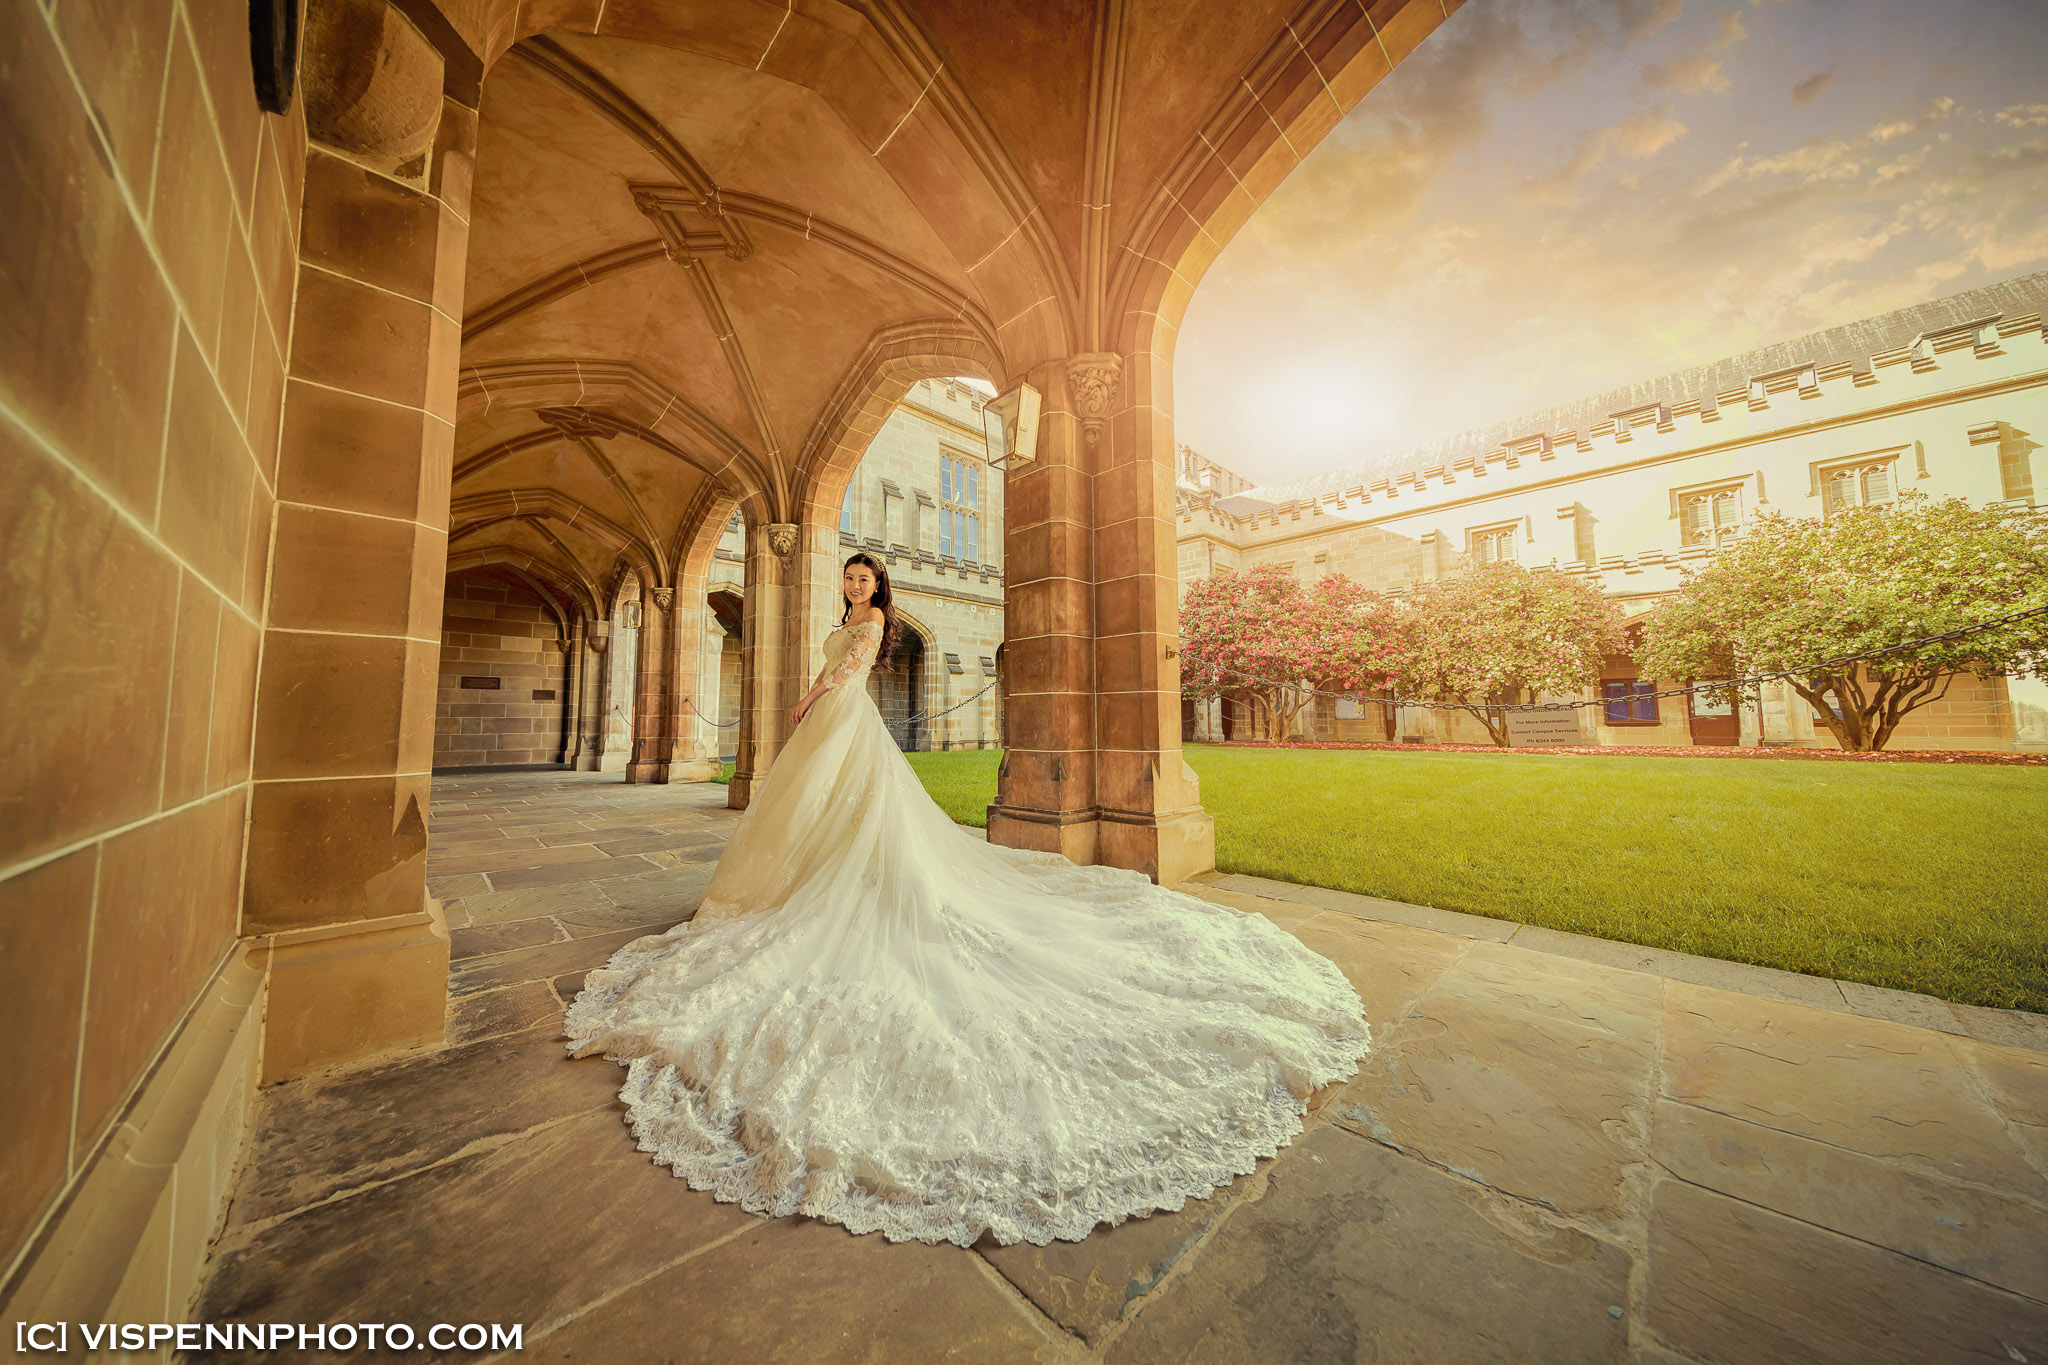 PRE WEDDING Photography Melbourne ZHPENN JackySerena 0383 1